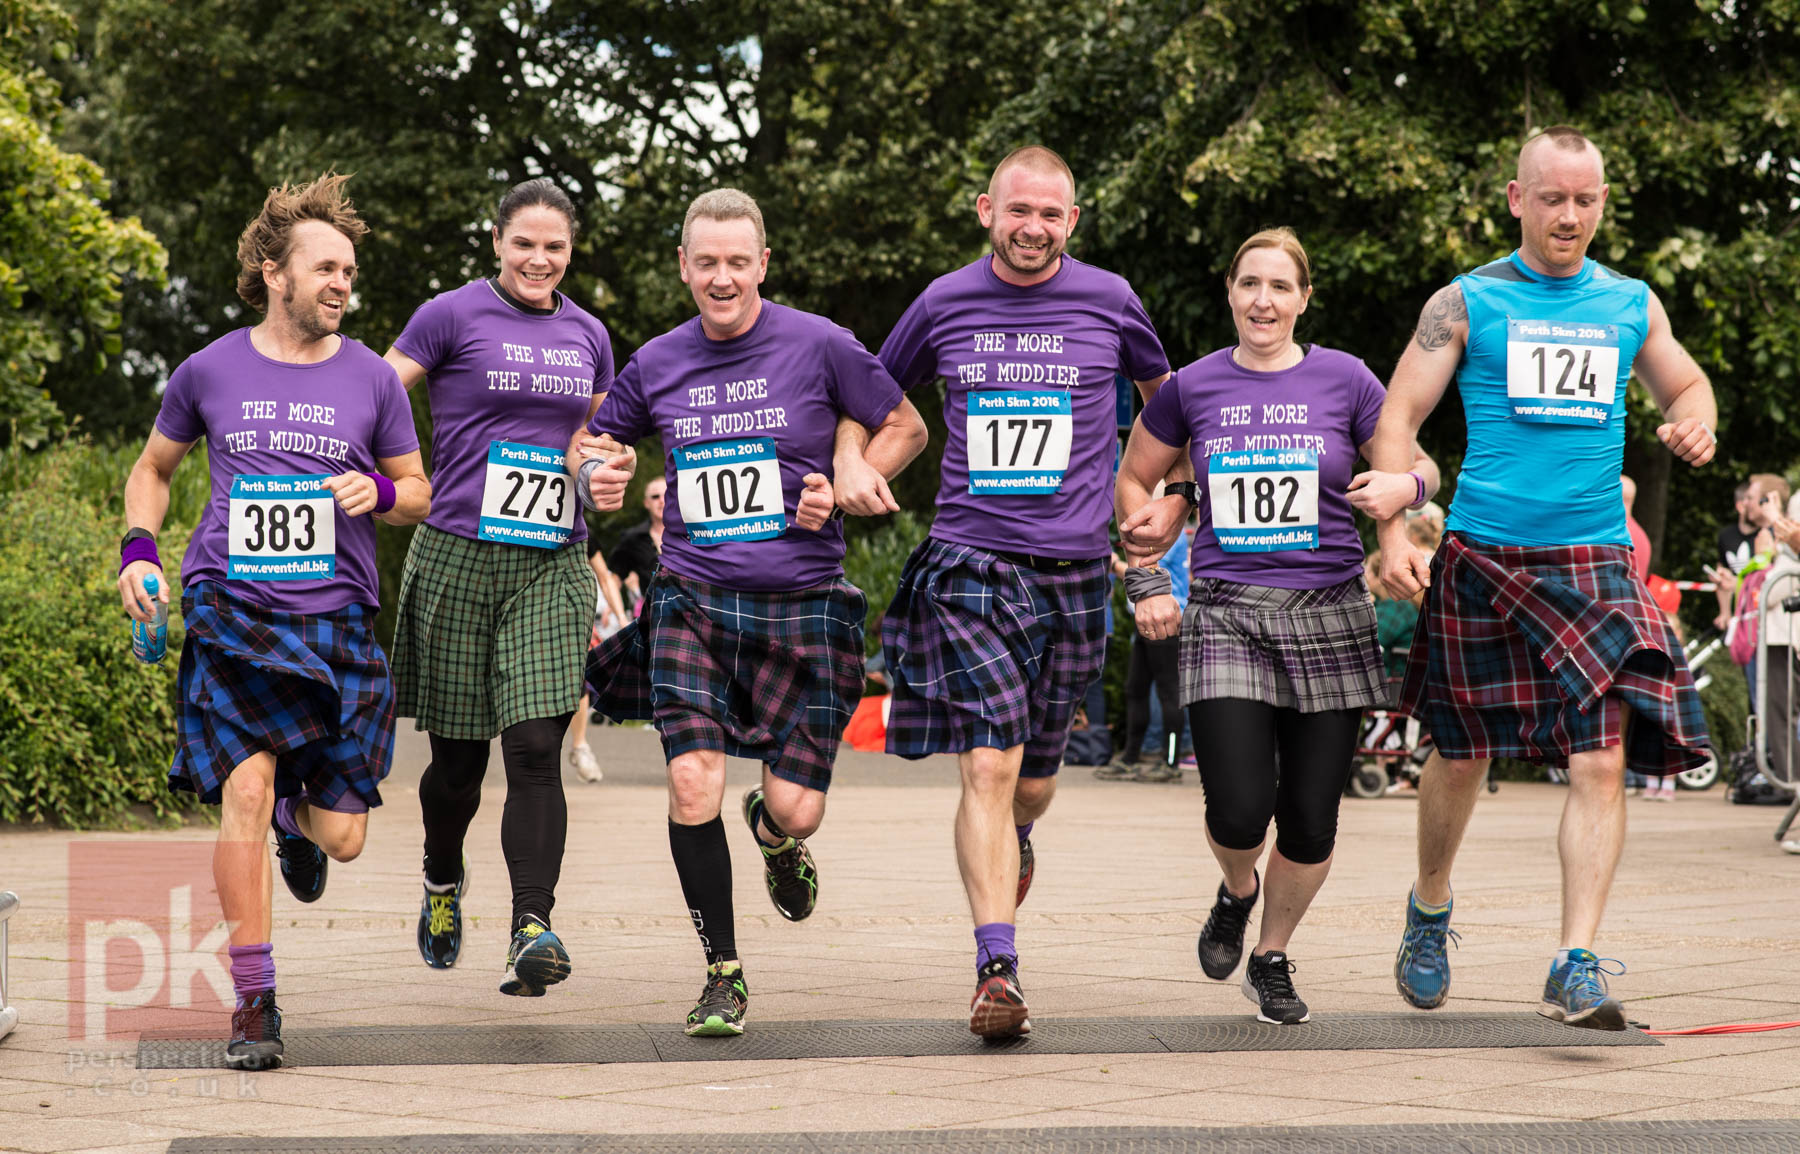 The Perth Kilt run was well attended - this group chose to cross the finish line as a unit.